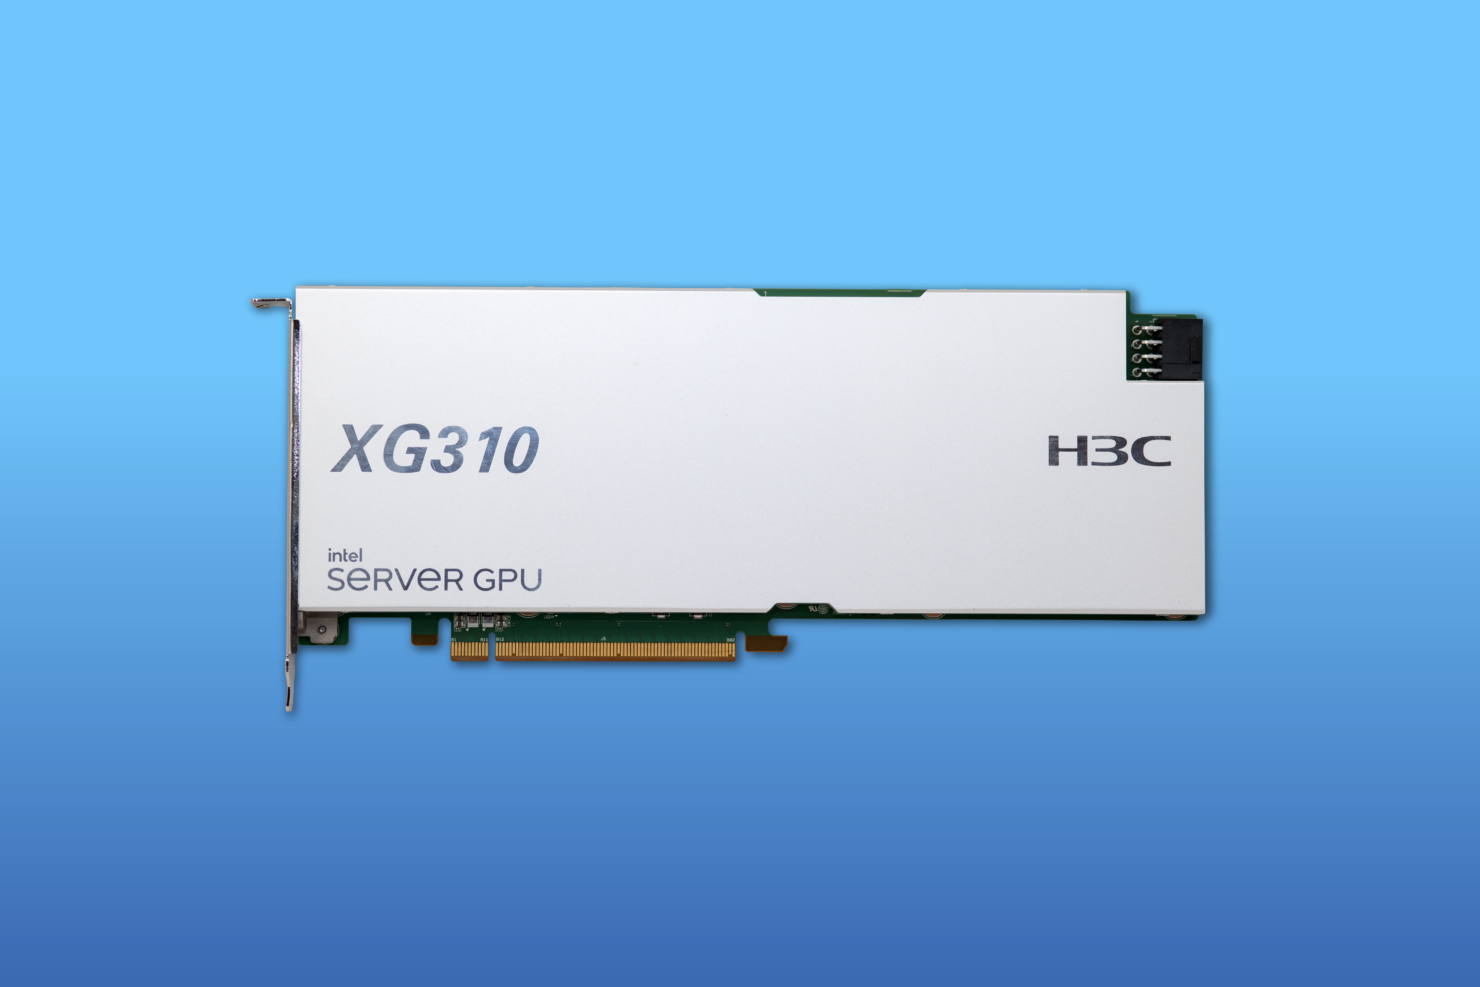 h3c-xg310-pcie-card-front-straight